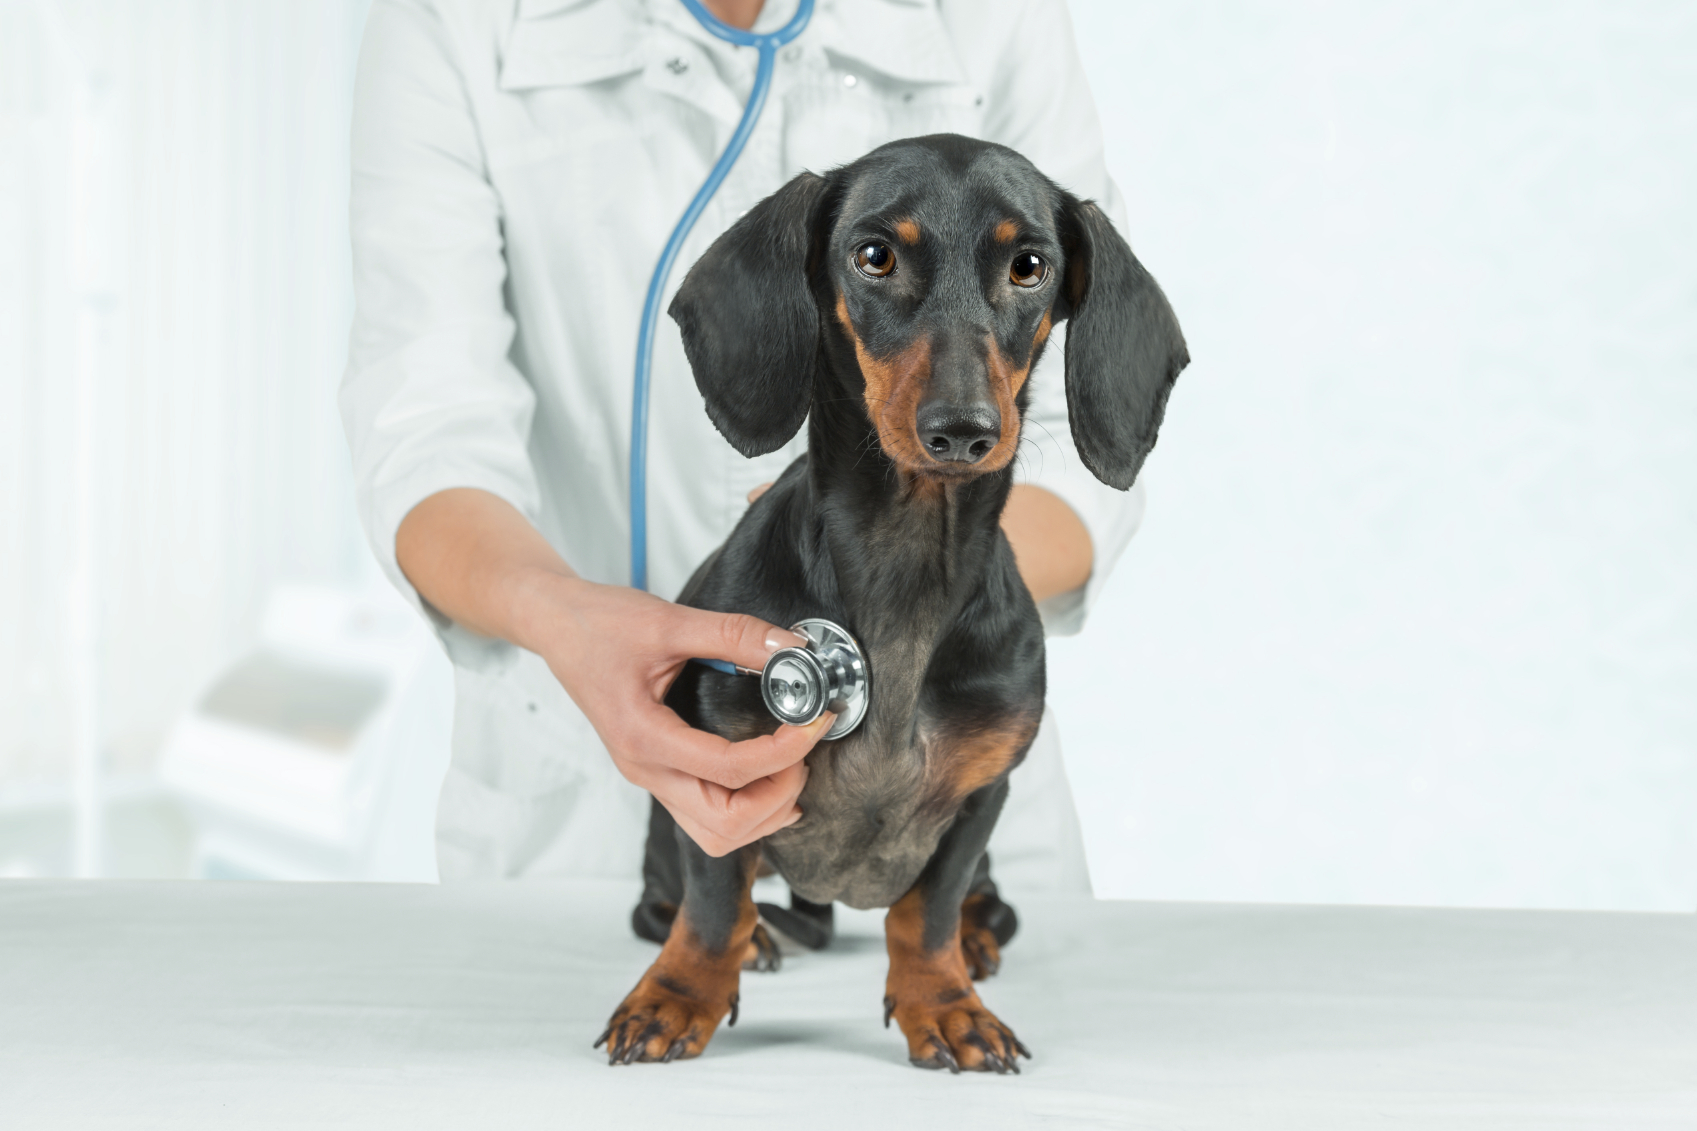 The new flu shot for dogs is ineffective and full of side effects.